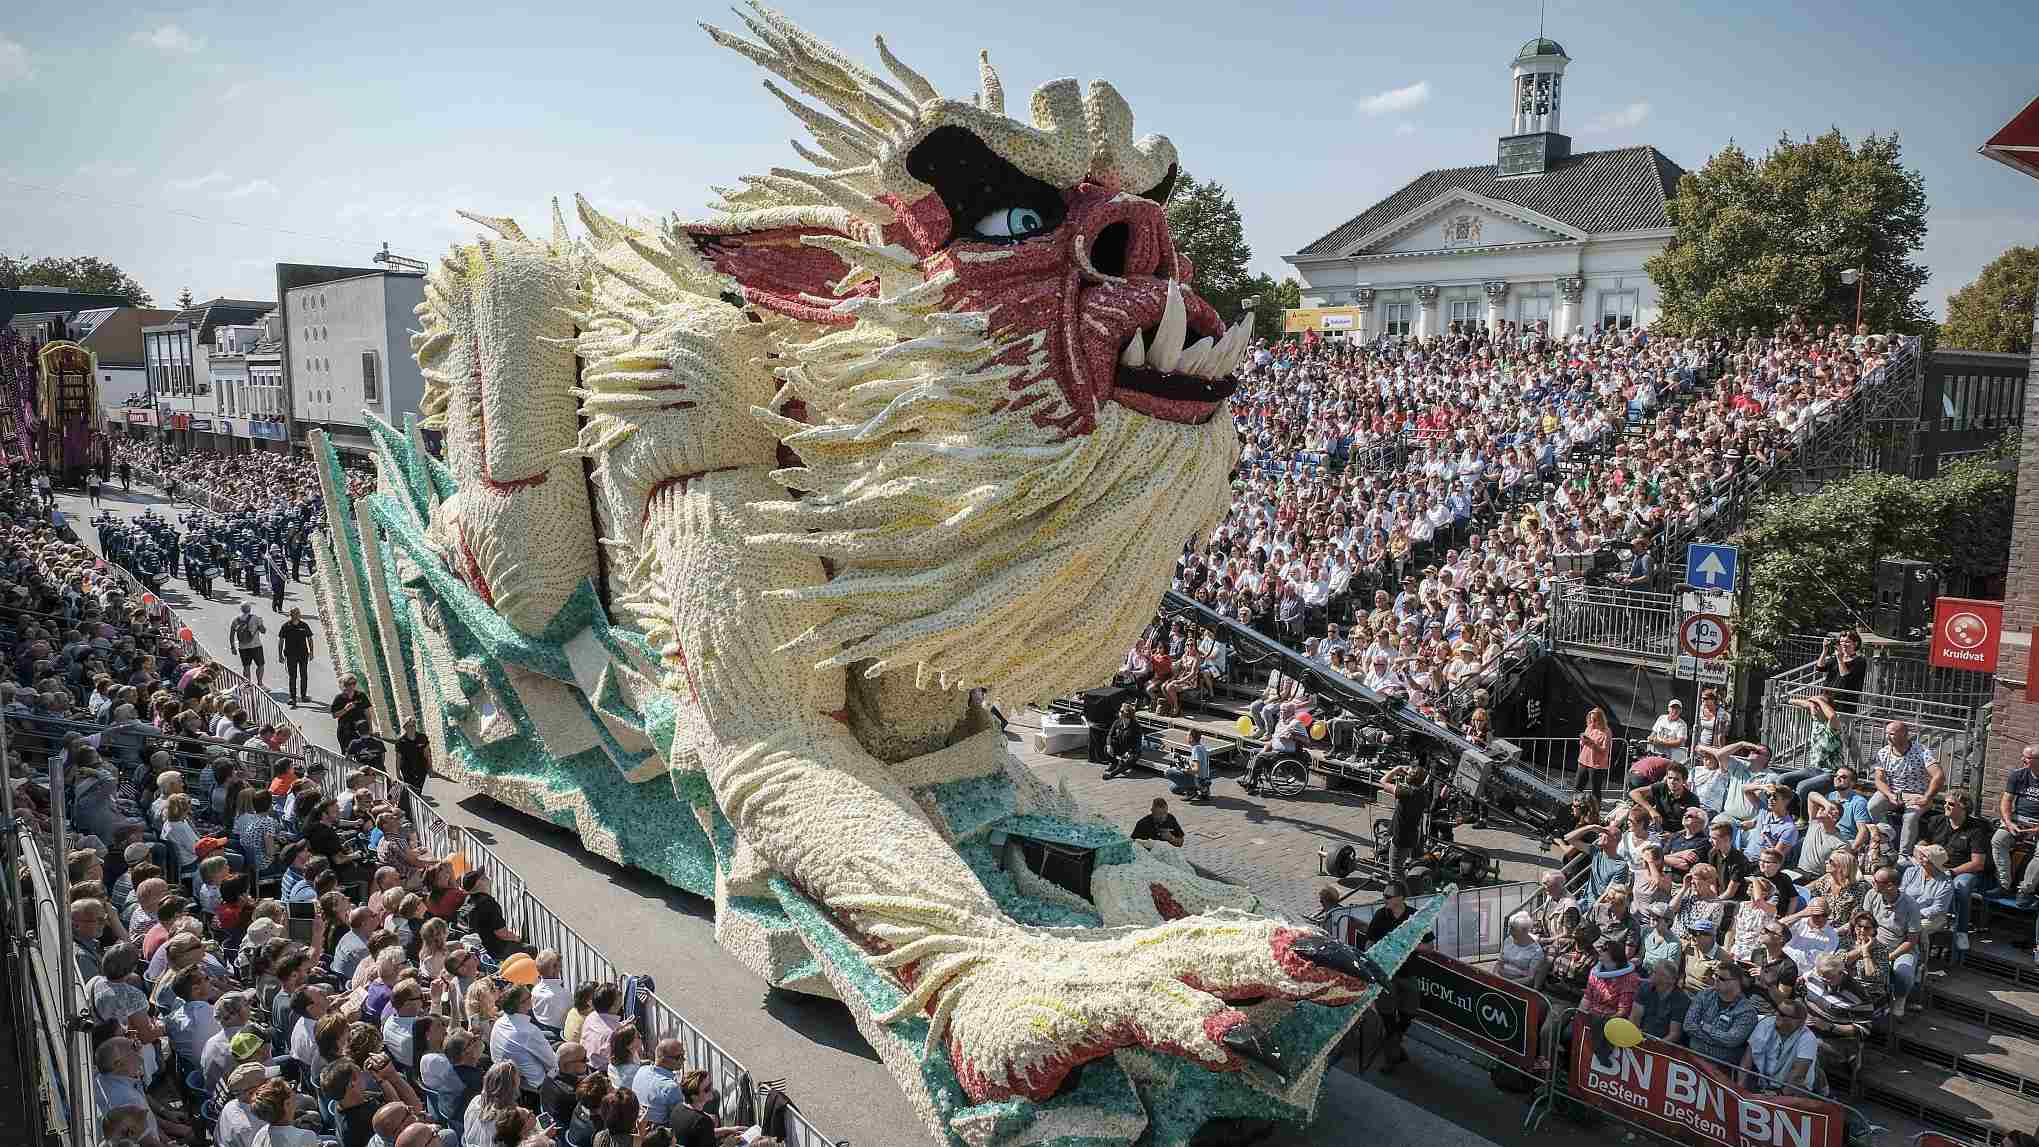 Annual flower parade adds touch of color to Dutch village